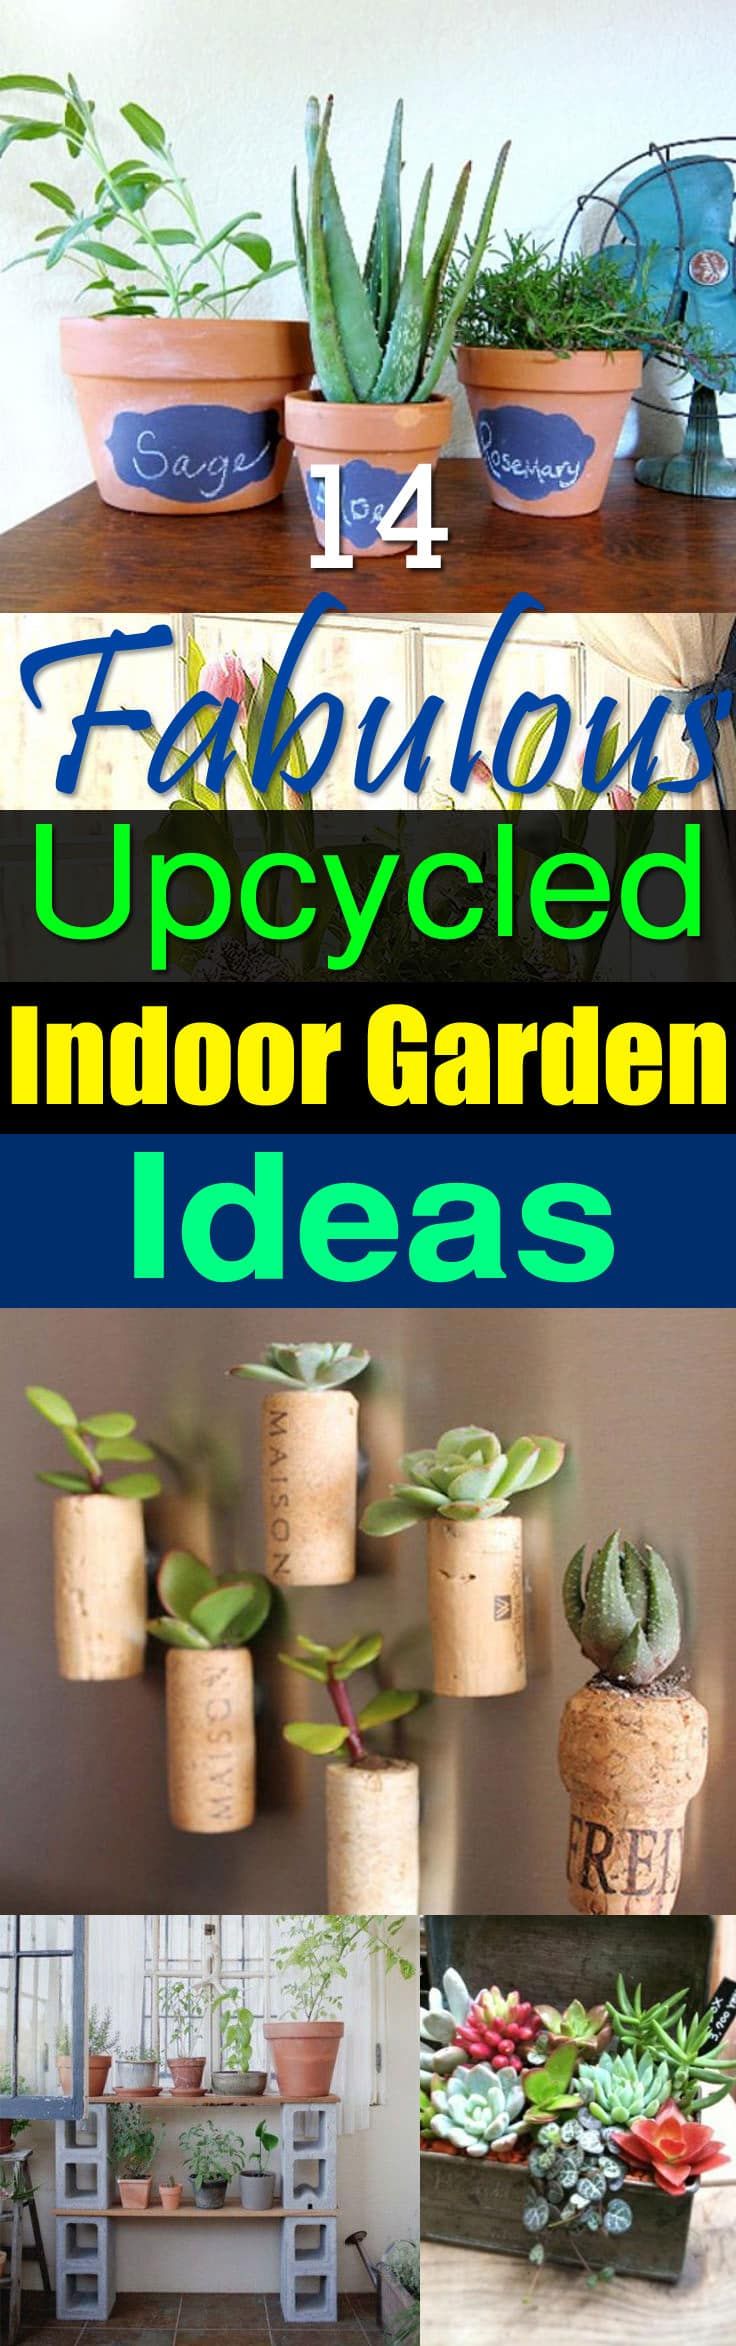 Want to grow an indoor garden from upcycled items at your home? Learn about these 14 Indoor Garden Ideas!